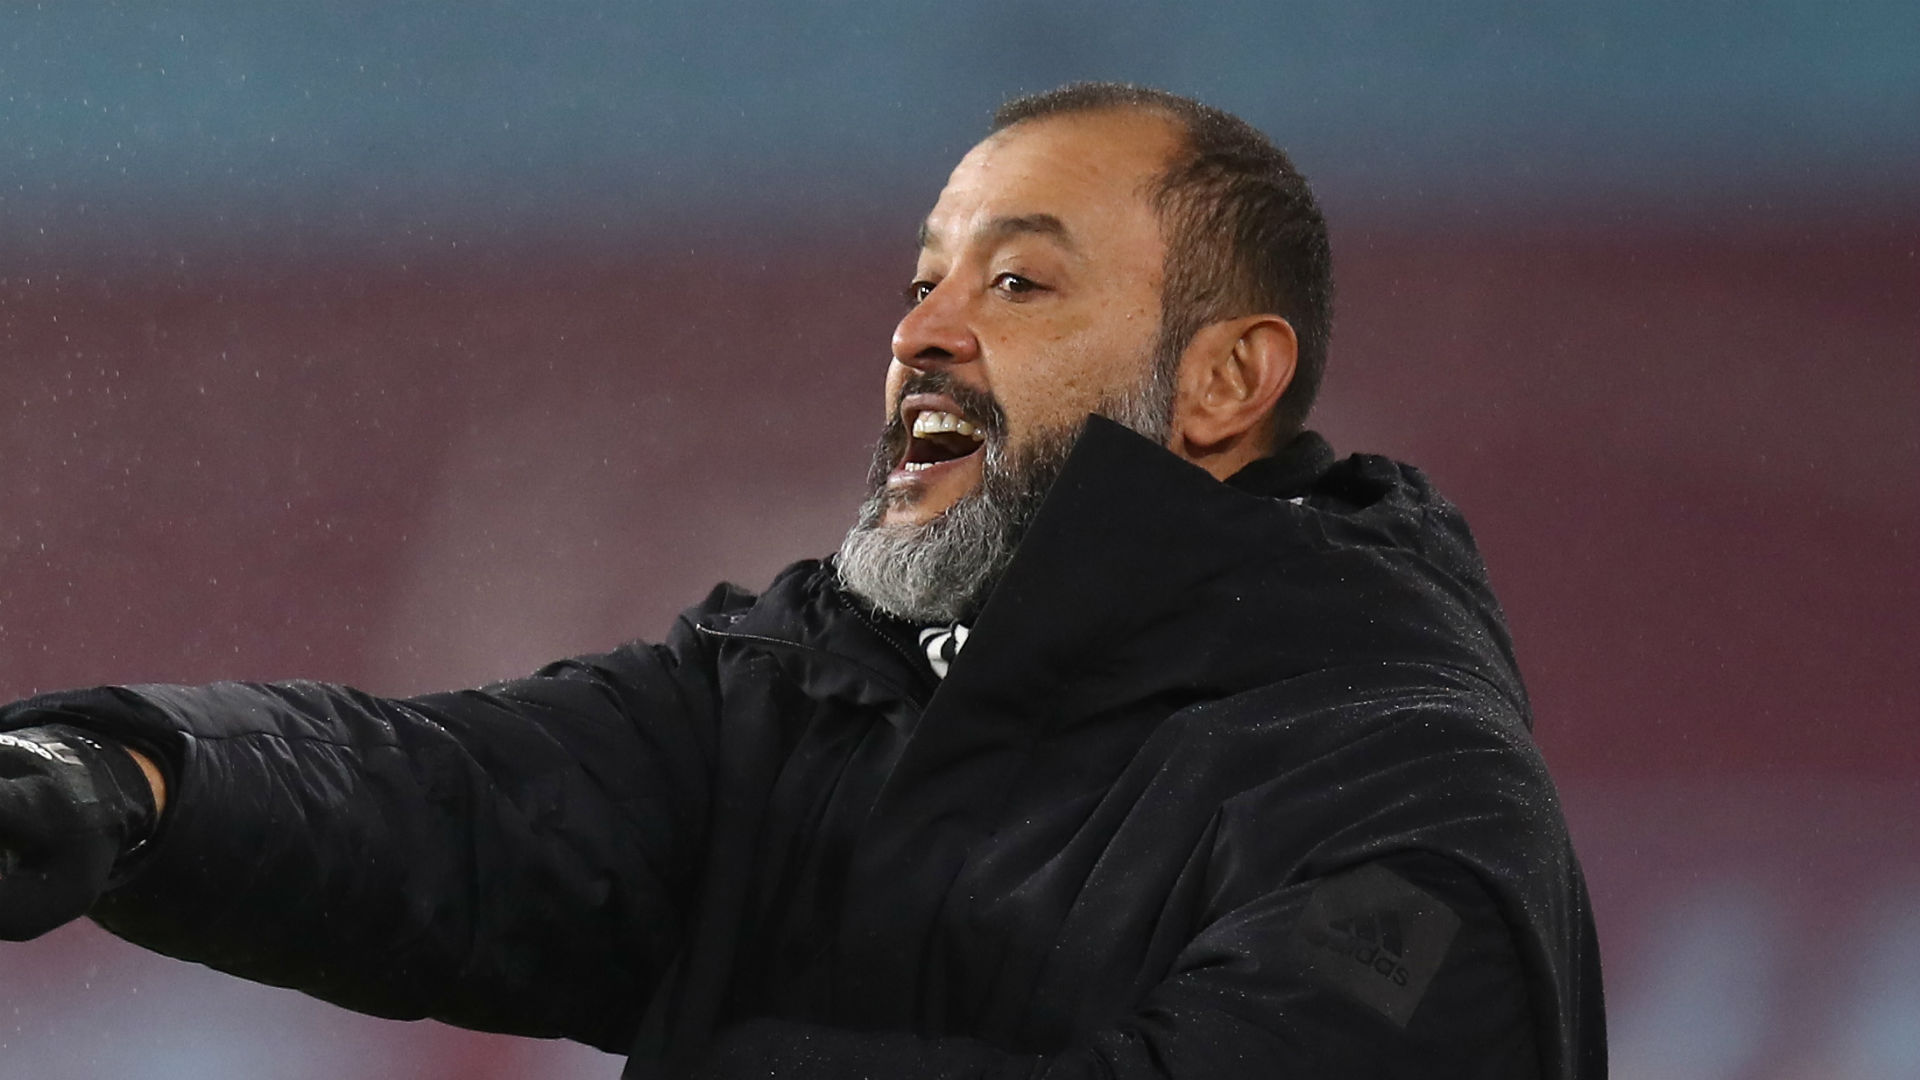 Wolves boss Nuno fears Super League formation if Premier League is suspended